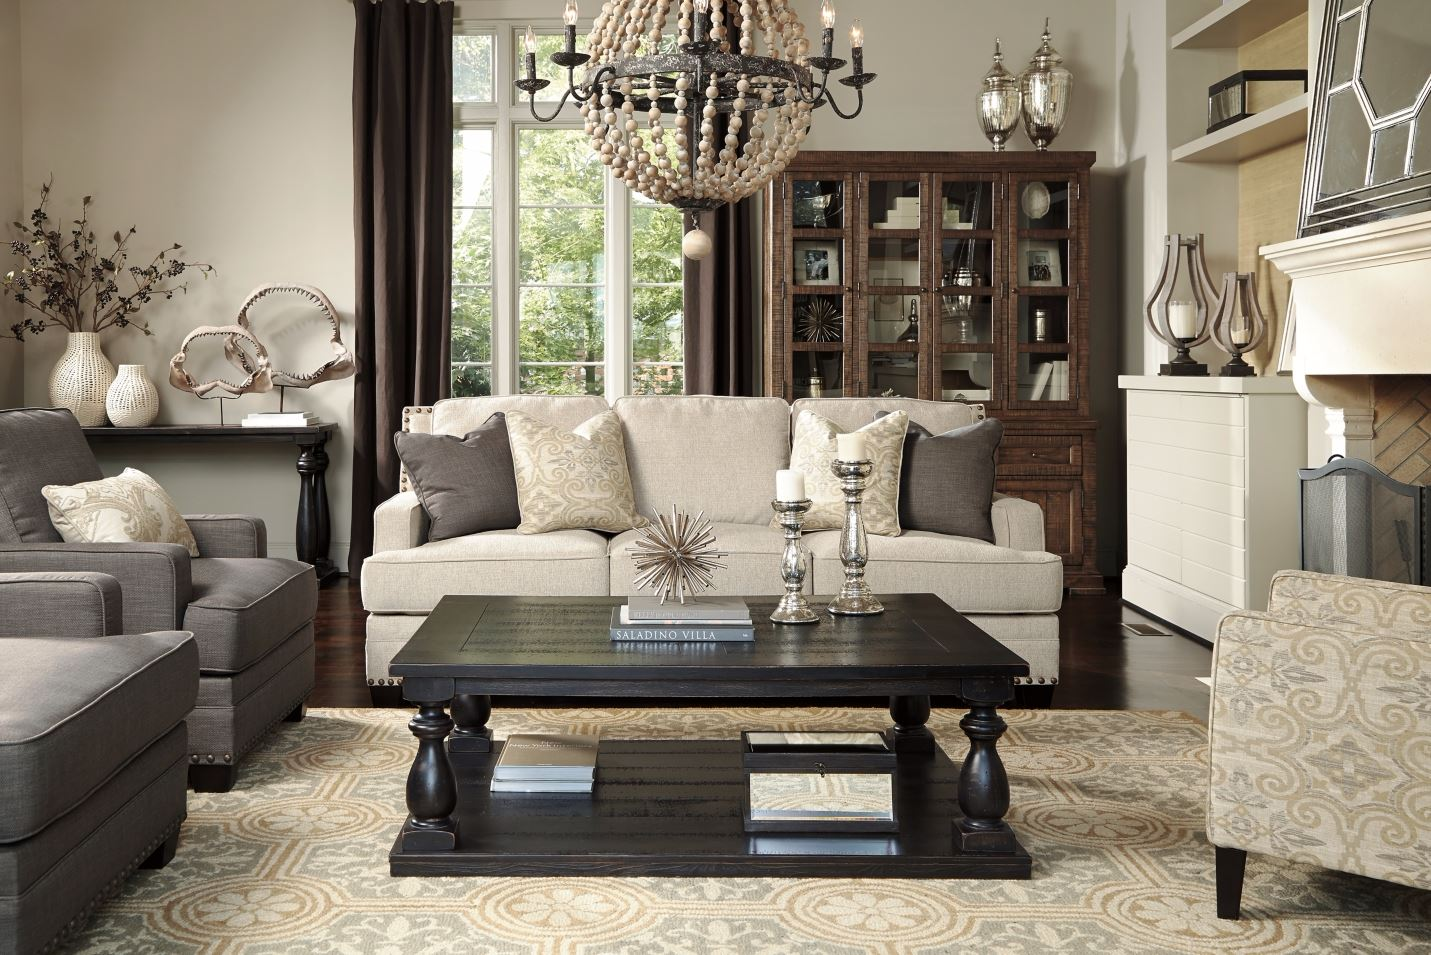 The new urban farmhouse chic ashley furniture homestore for Living room ideas ashley furniture